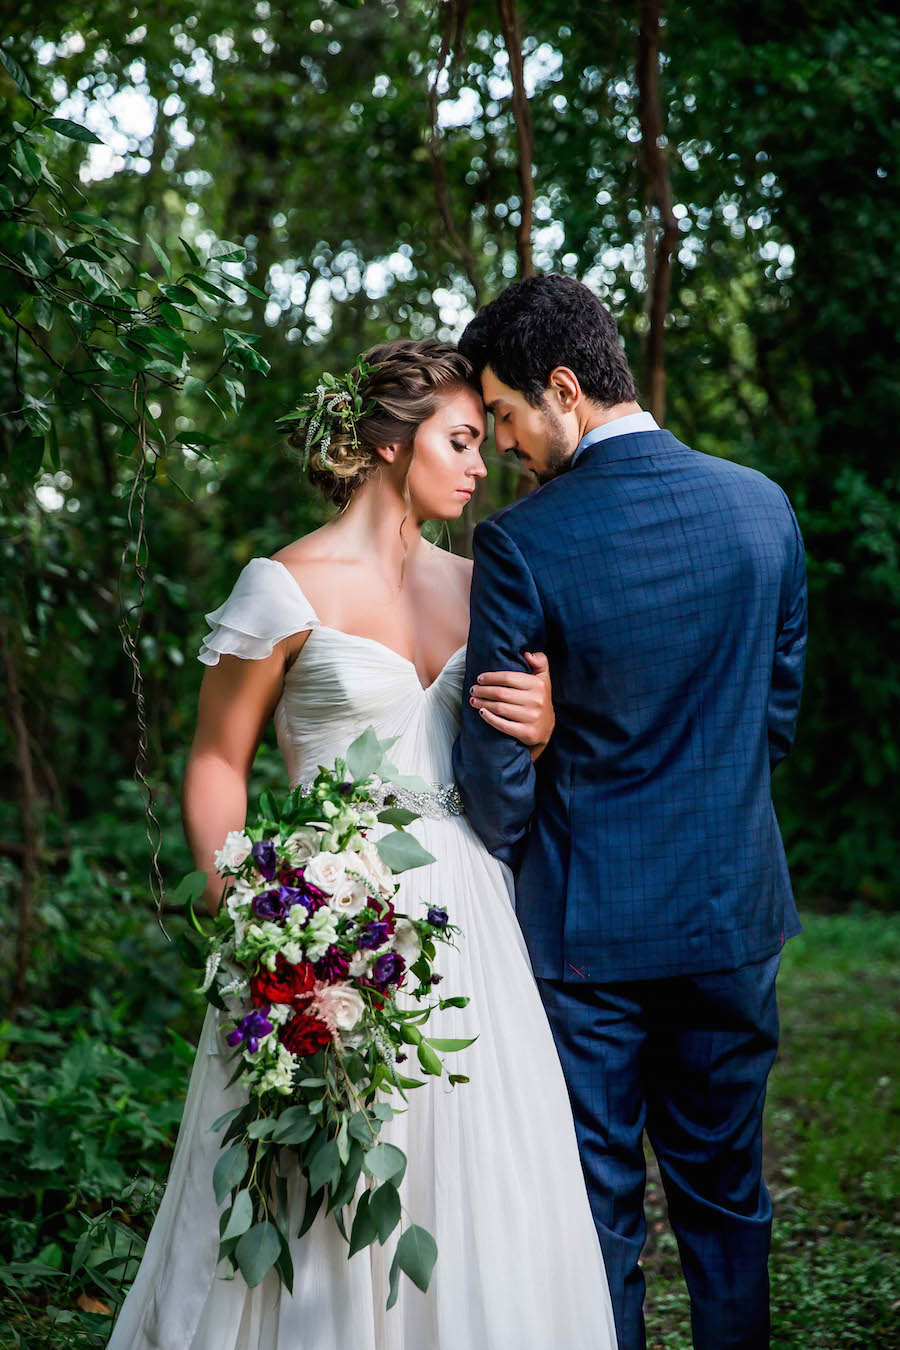 Bride wearing Amsale wedding dress from Blush Bridal Sarasota and Groom Portrait with Deep Red Burgundy Wedding Bouquet with Greenery | Southern Inspired Outdoor Wedding Reception Decor Styled Shoot